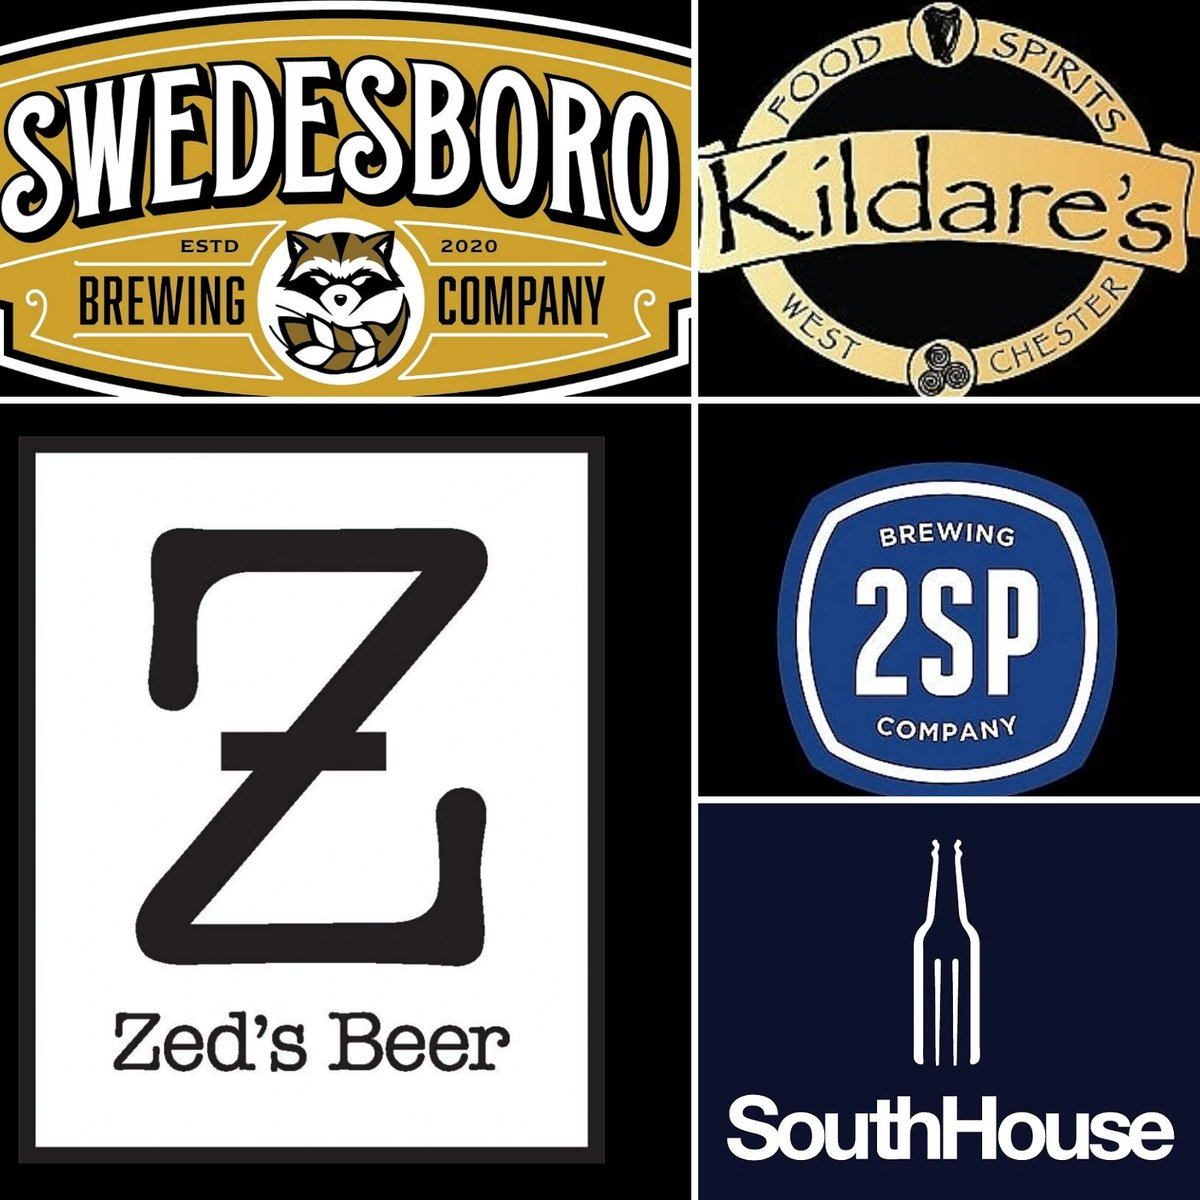 Tomorrow is gameday! Looking for a spot to catch the match? Check out one of these awesome places! 🔹️ @SwedesboroBeer 🔹️ @KildaresPubWC 🔹️ @drinkzeds 🔹️ @2spbrewing 🔹️ @SoHoPhilly